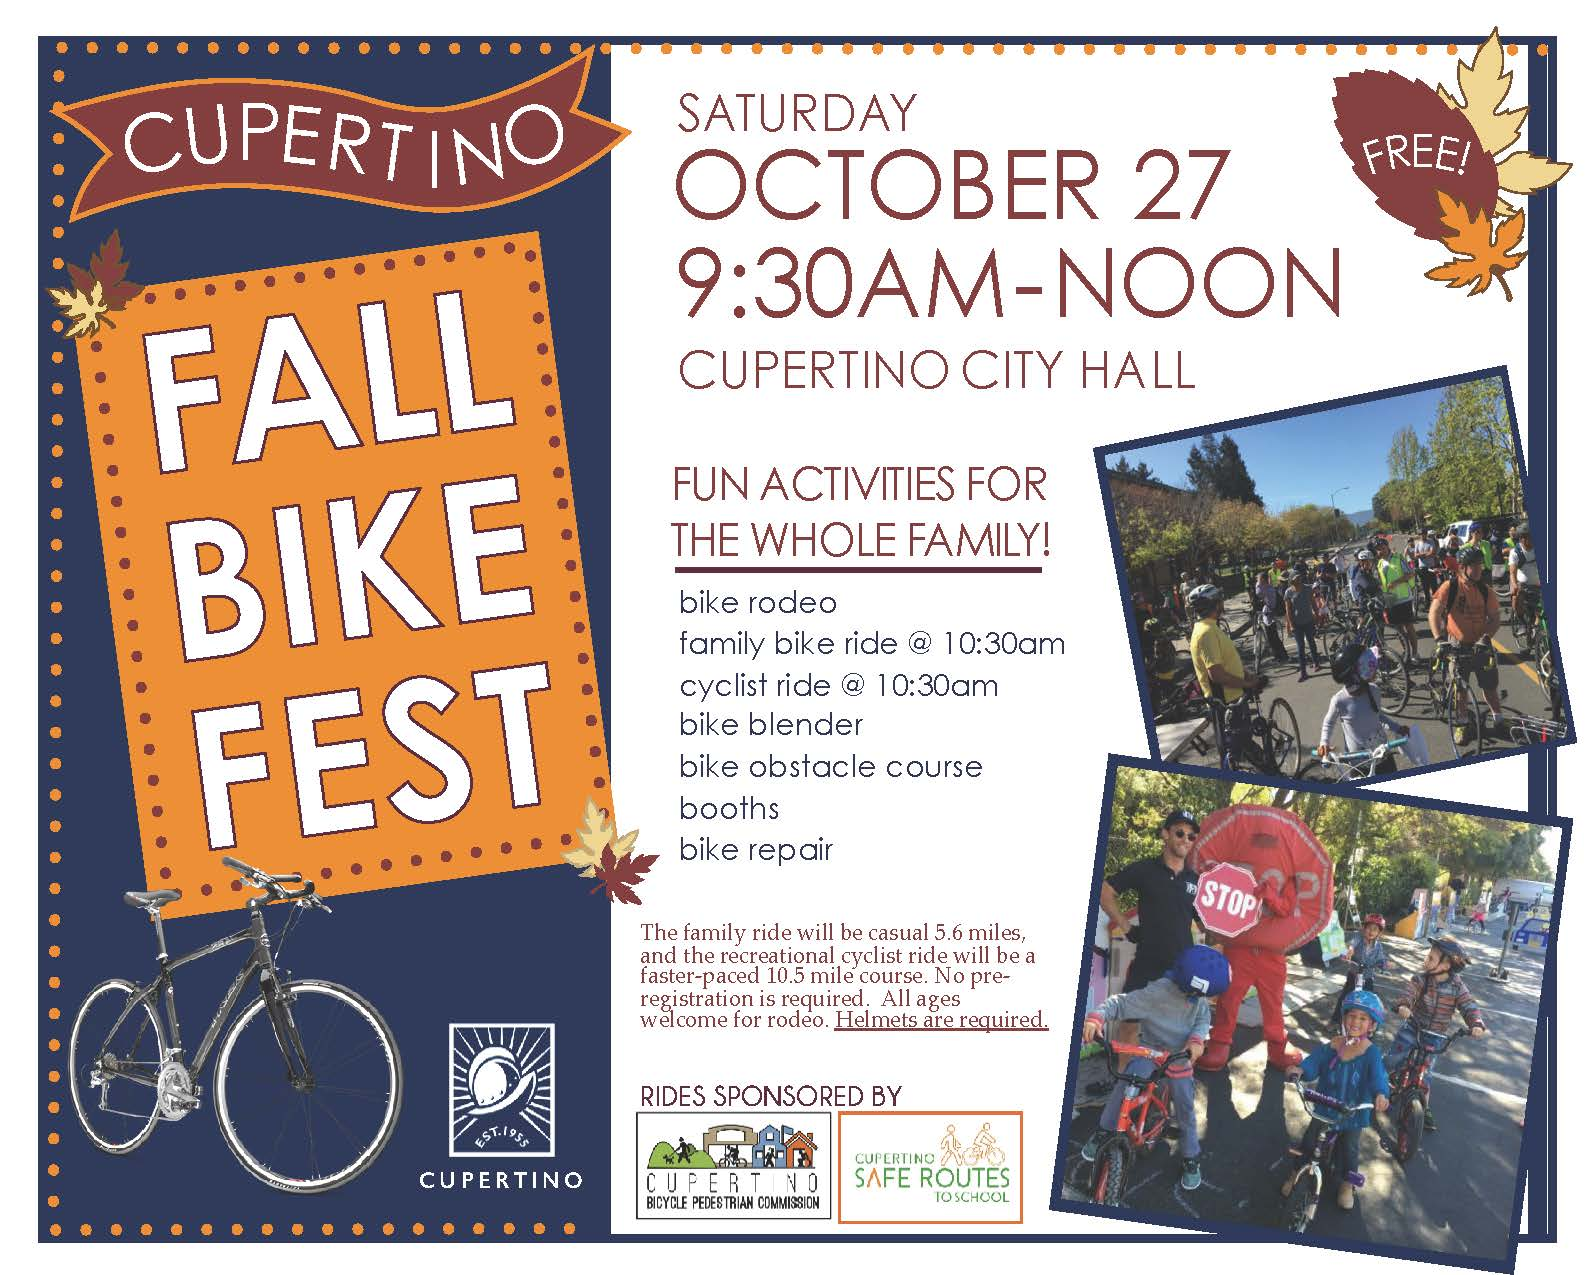 Cupertino Fall Bike Festival This Saturday, October 27th